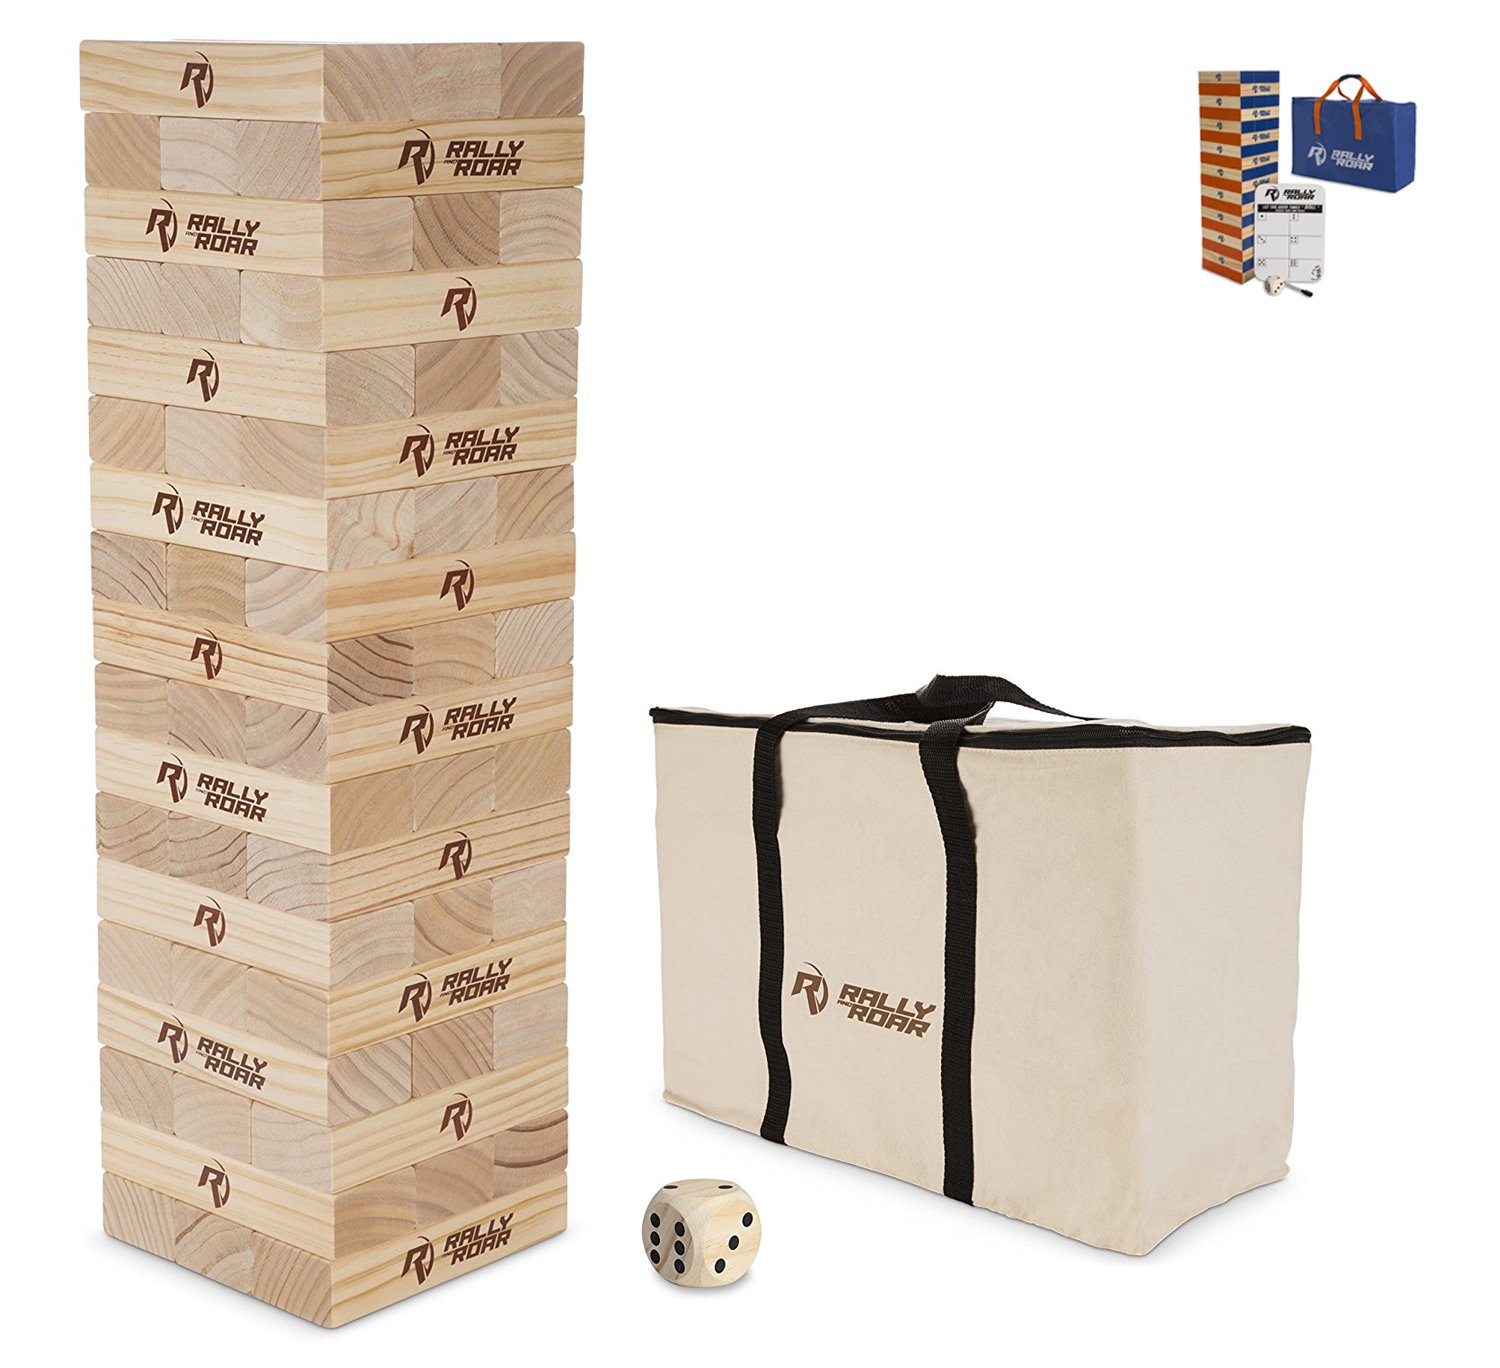 Rally and Roar Toppling Tower Giant Tumbling Timbers Game 2.5 feet Tall (Build to Over 5 feet)– Classic Wood Version - for Adults, Kids, Family – Stacking Blocks Set w/Canvas Bag by Rally and Roar (Image #2)